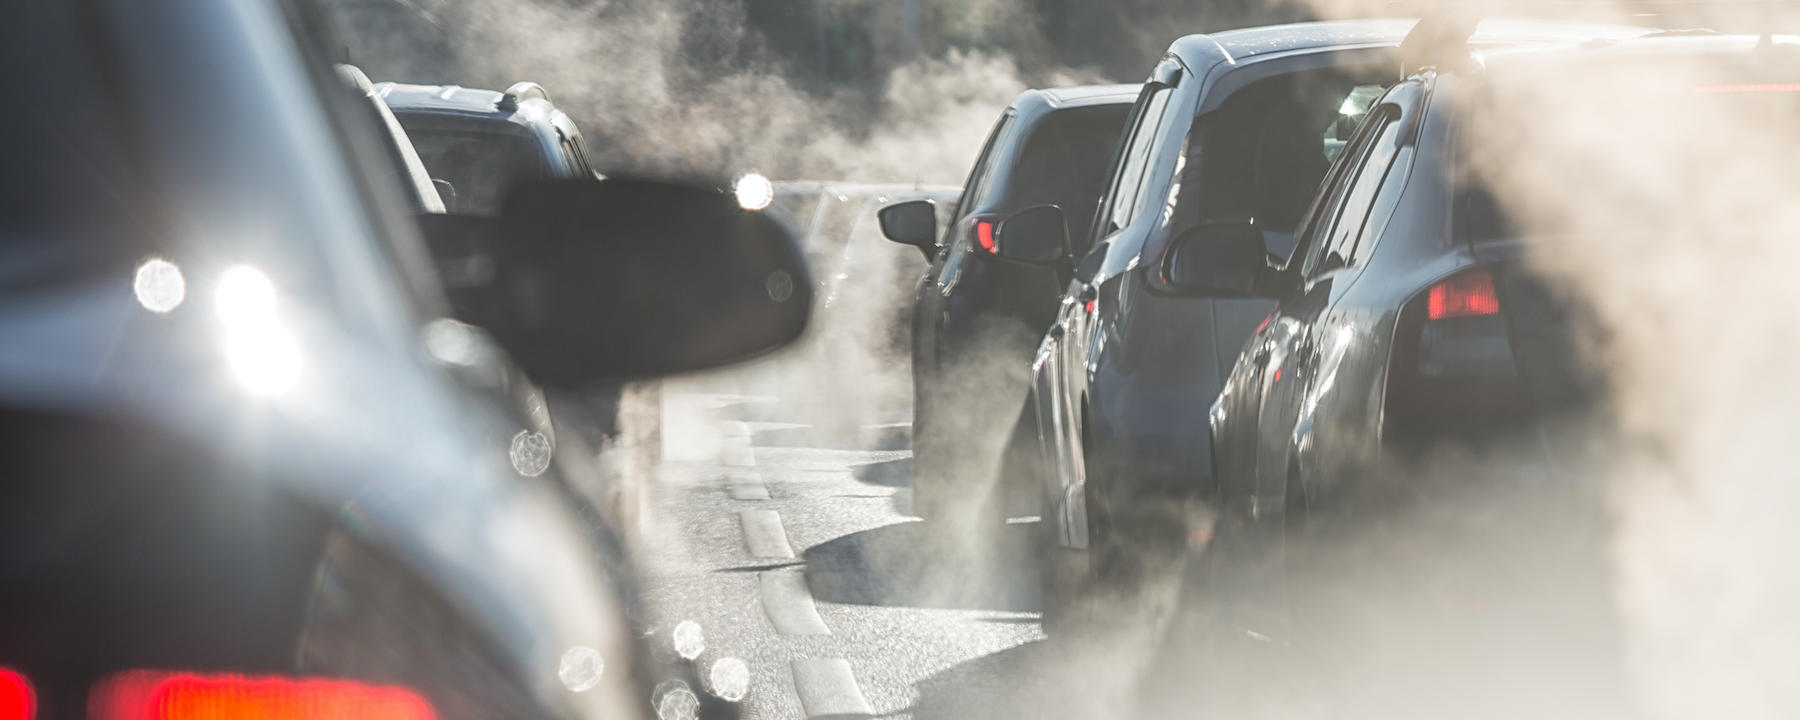 Air Pollution Tied to Brain Cancer: Study